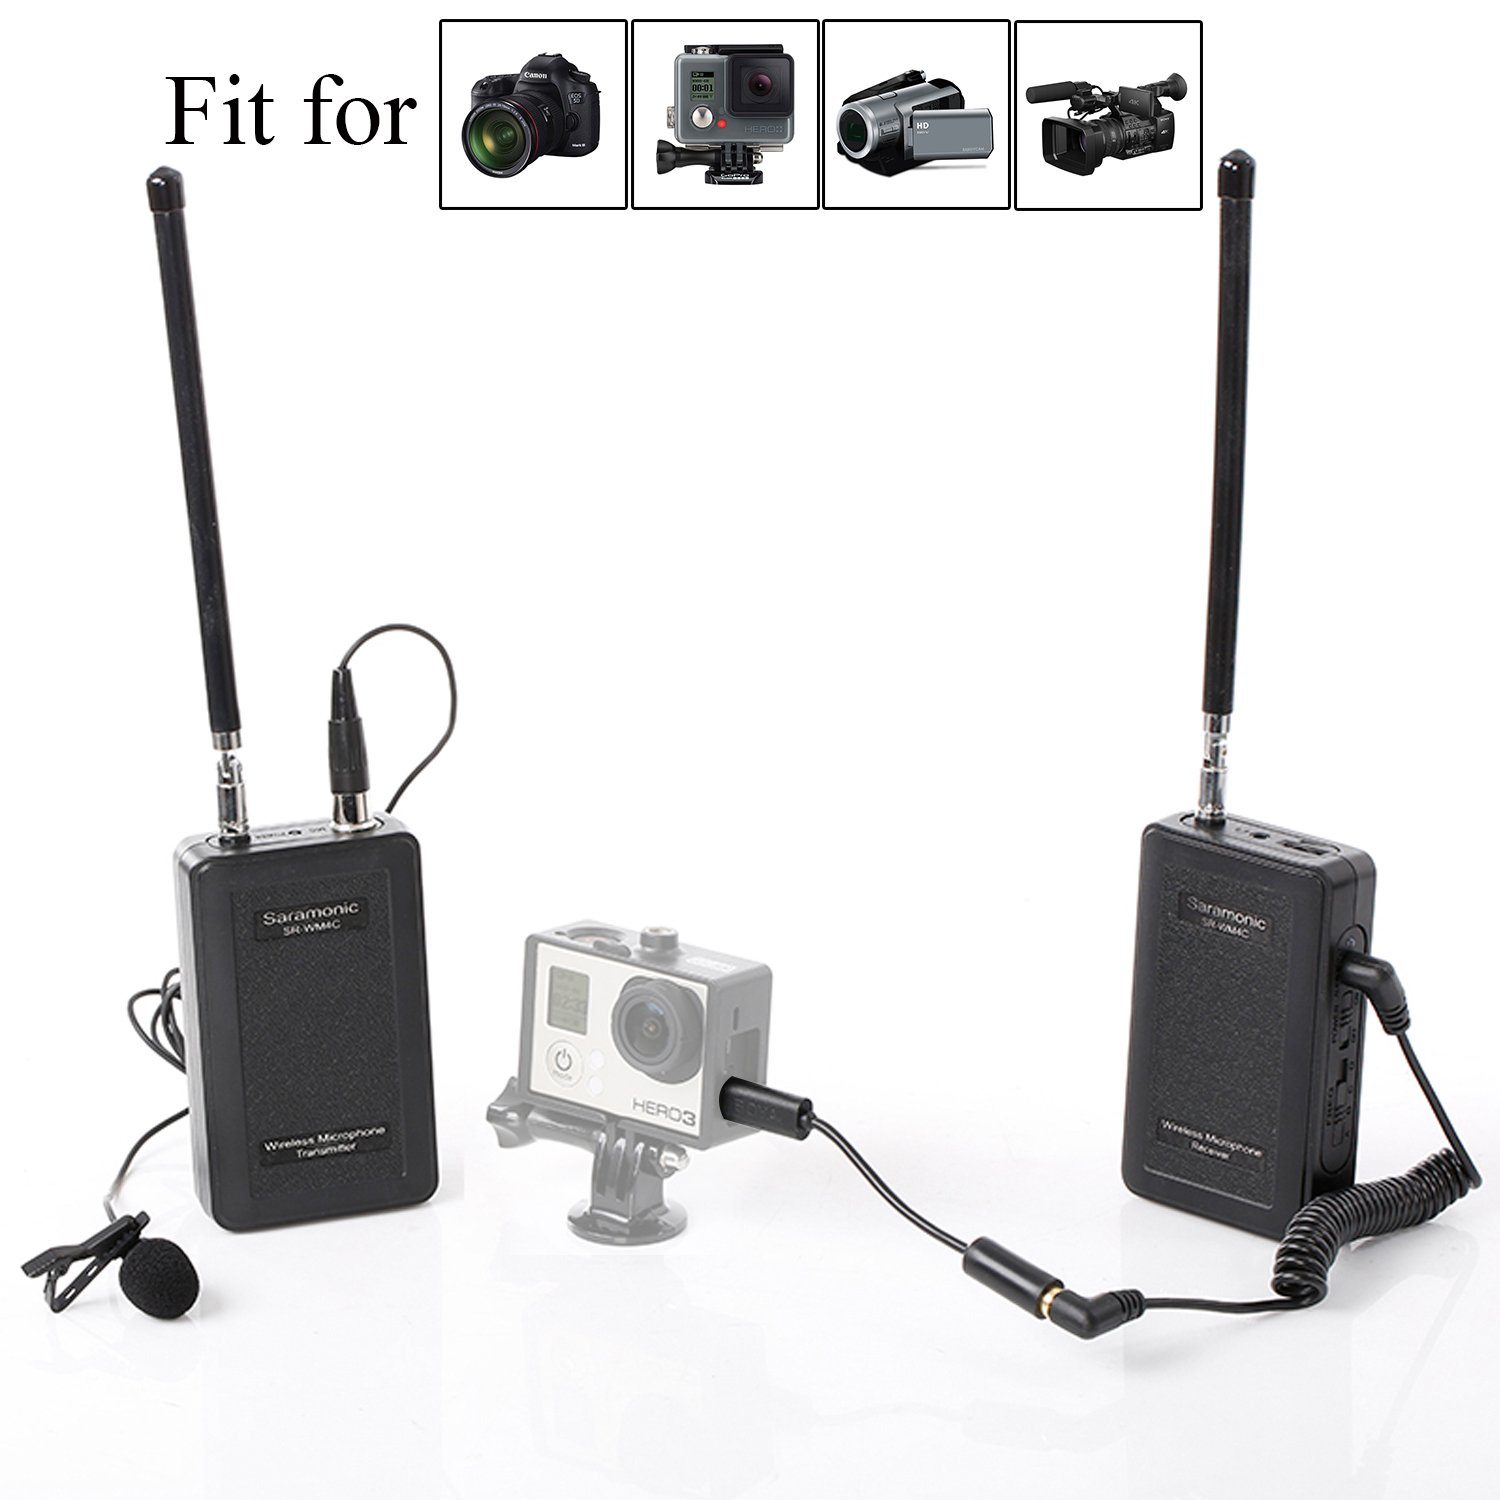 Saramonic SR-WM4C Camera Wireless Lavalier Microphone System for Canon 6D 600D 5D2 5D3 Nikon D800 Sony DV DSLR Camcorders GoPro Hero 4 3 3+ SR-WM4C-G_12